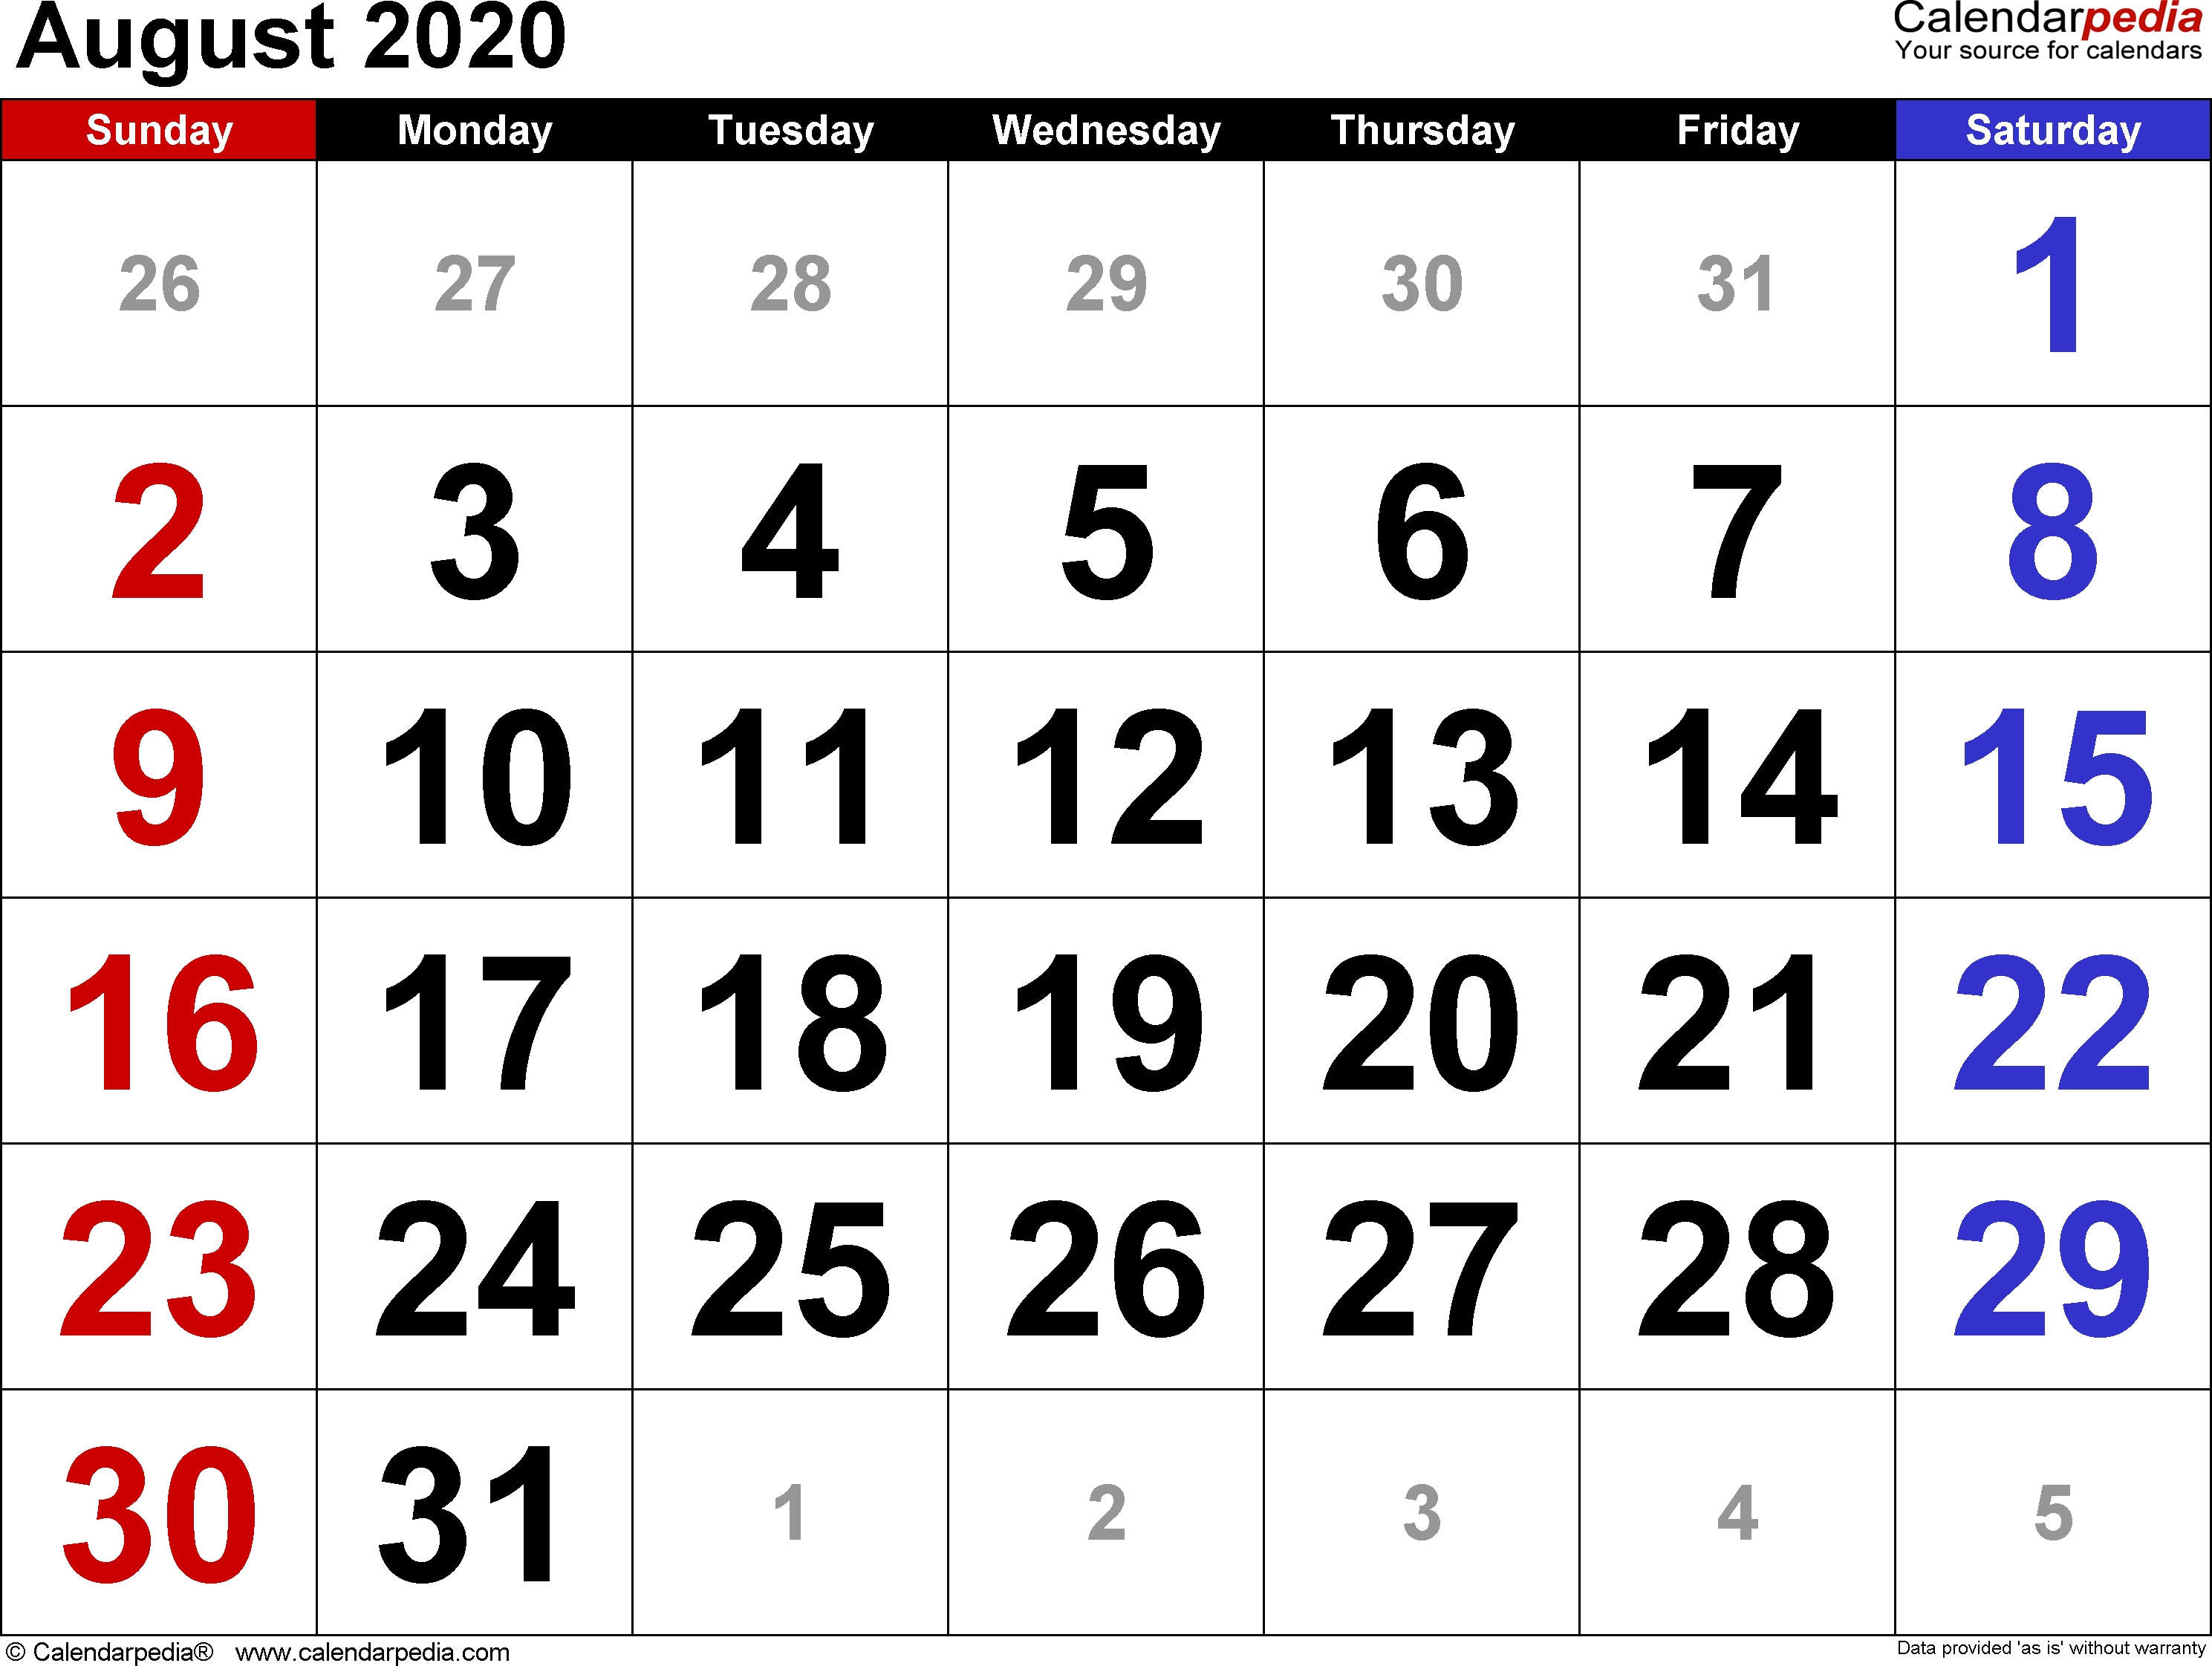 August 2020 Calendars For Word, Excel & Pdf  2020 Calendar August To December